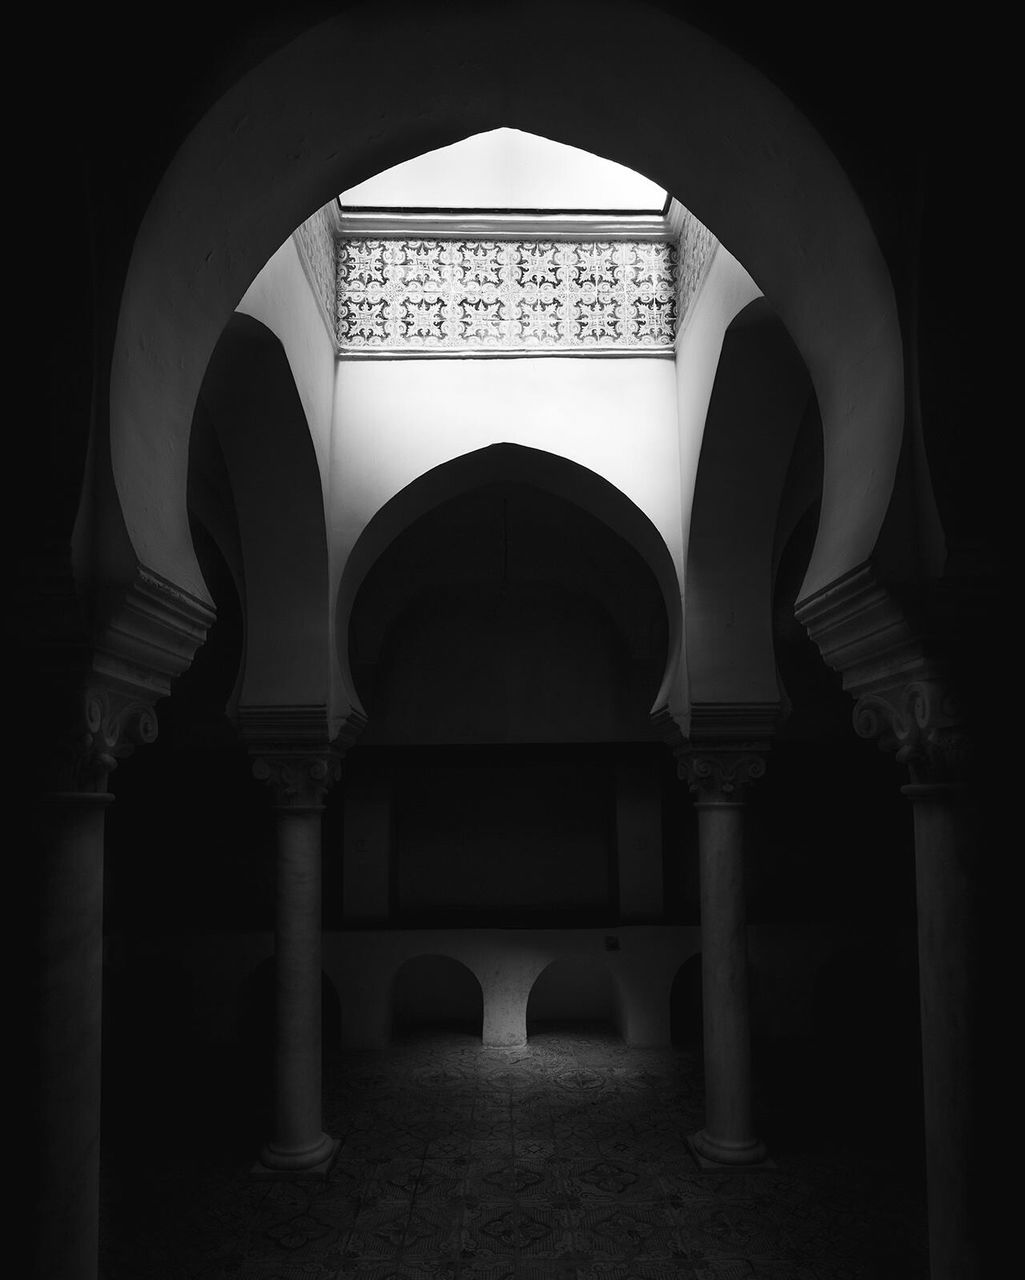 arch, architecture, built structure, architectural column, no people, history, indoors, illuminated, day